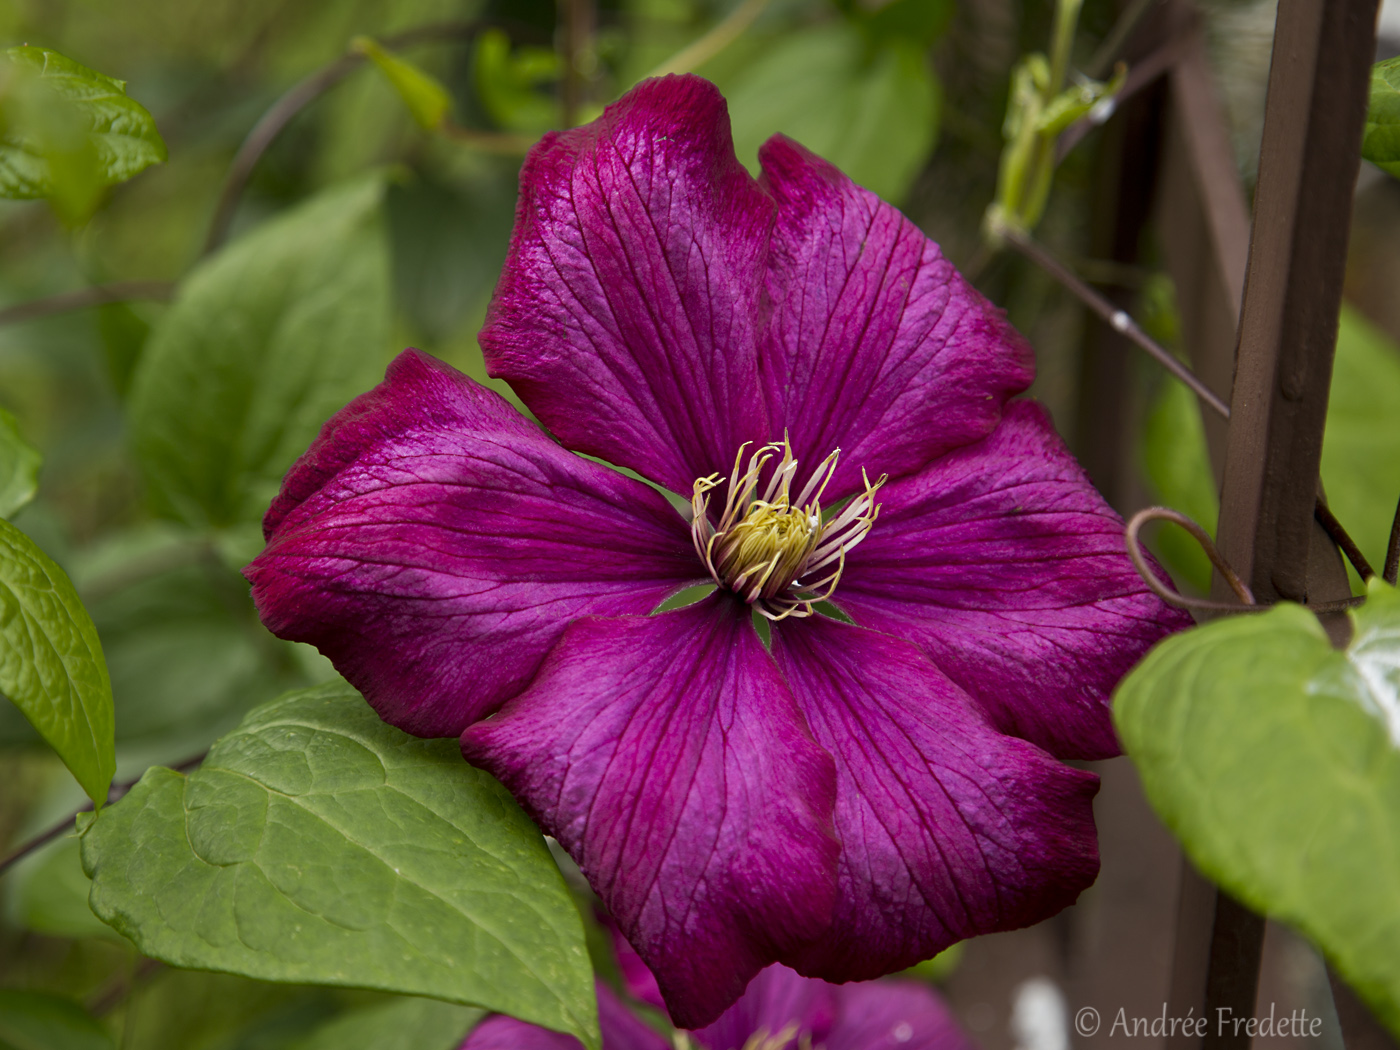 Clematis with lush colour. Photo by Andrée Fredette